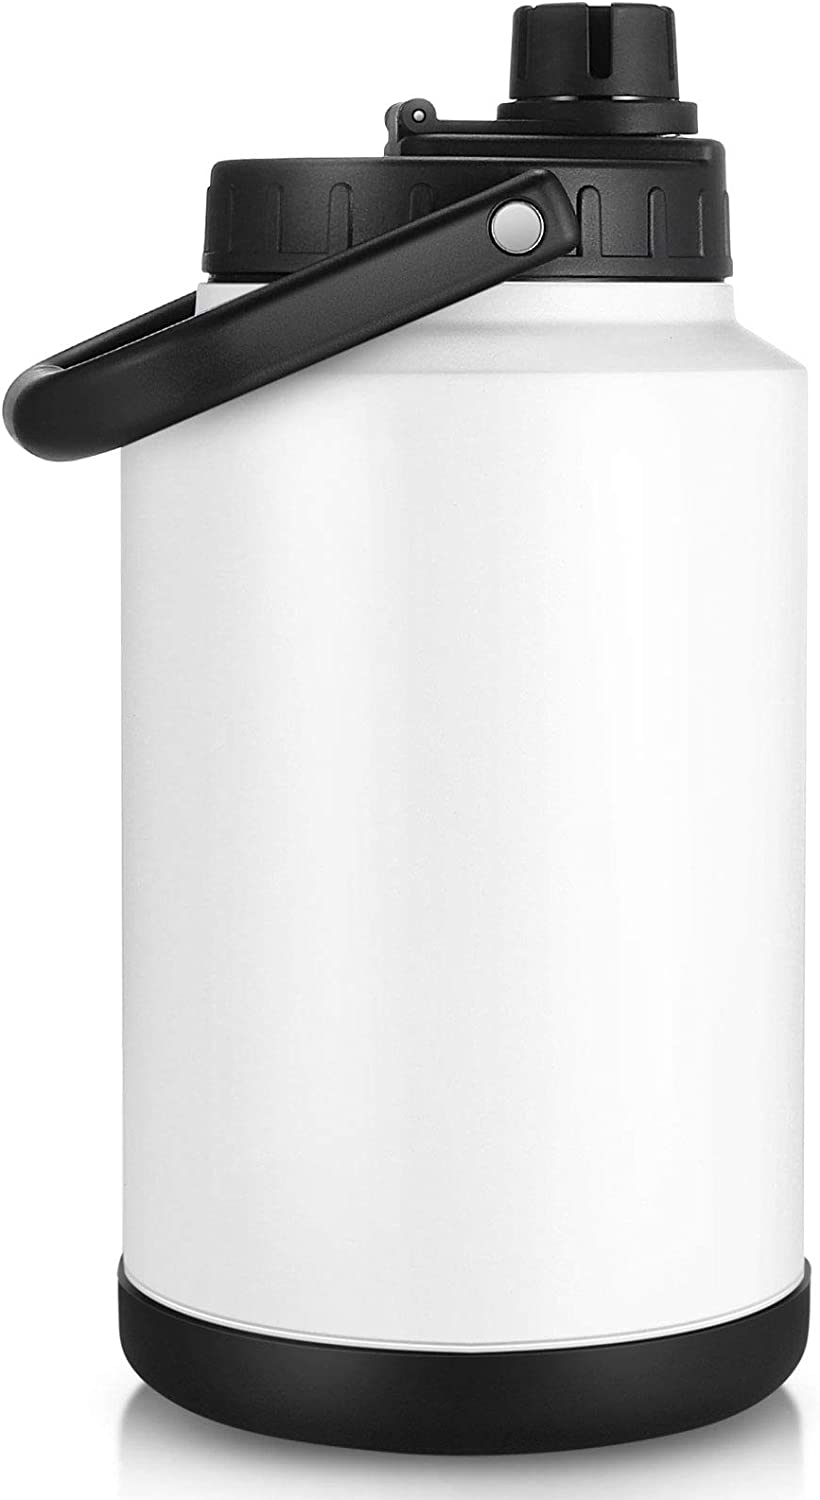 Sursip One Gallon Vacuum Insulated Jug,Double-Walled 18/8 Food-grade Stainless Steel 128oz Water Bottle,Hot/Cold Thermo,Travel/Camping/Sports/Outdoor/Driving Choice(White)